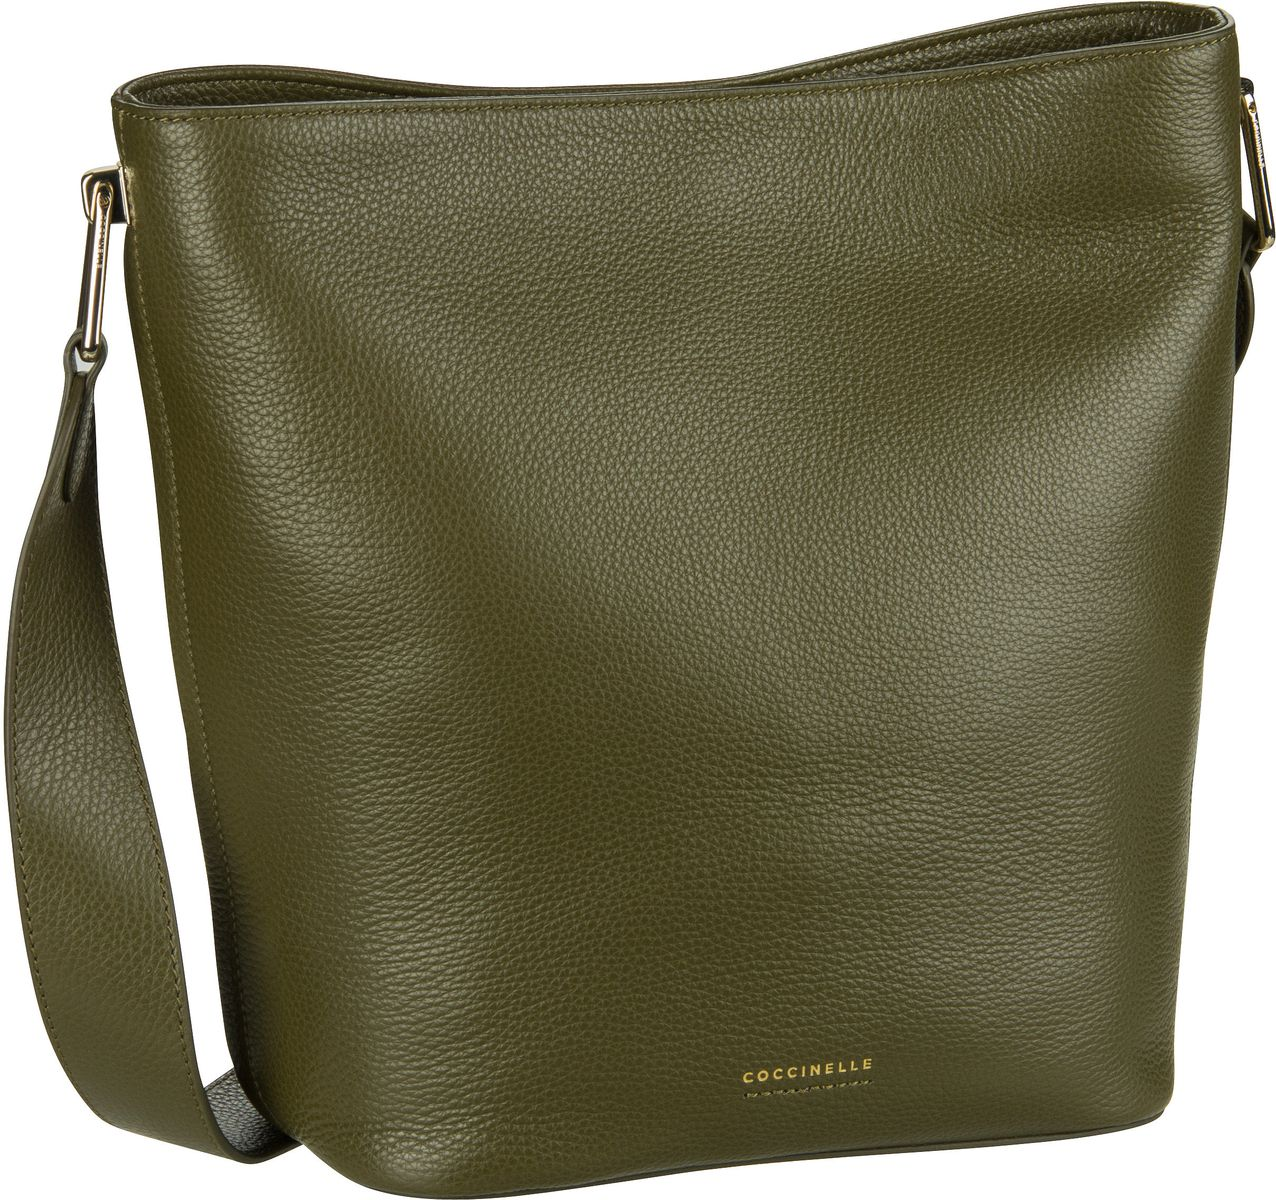 Handtasche Frenchy 2302 Evergreen